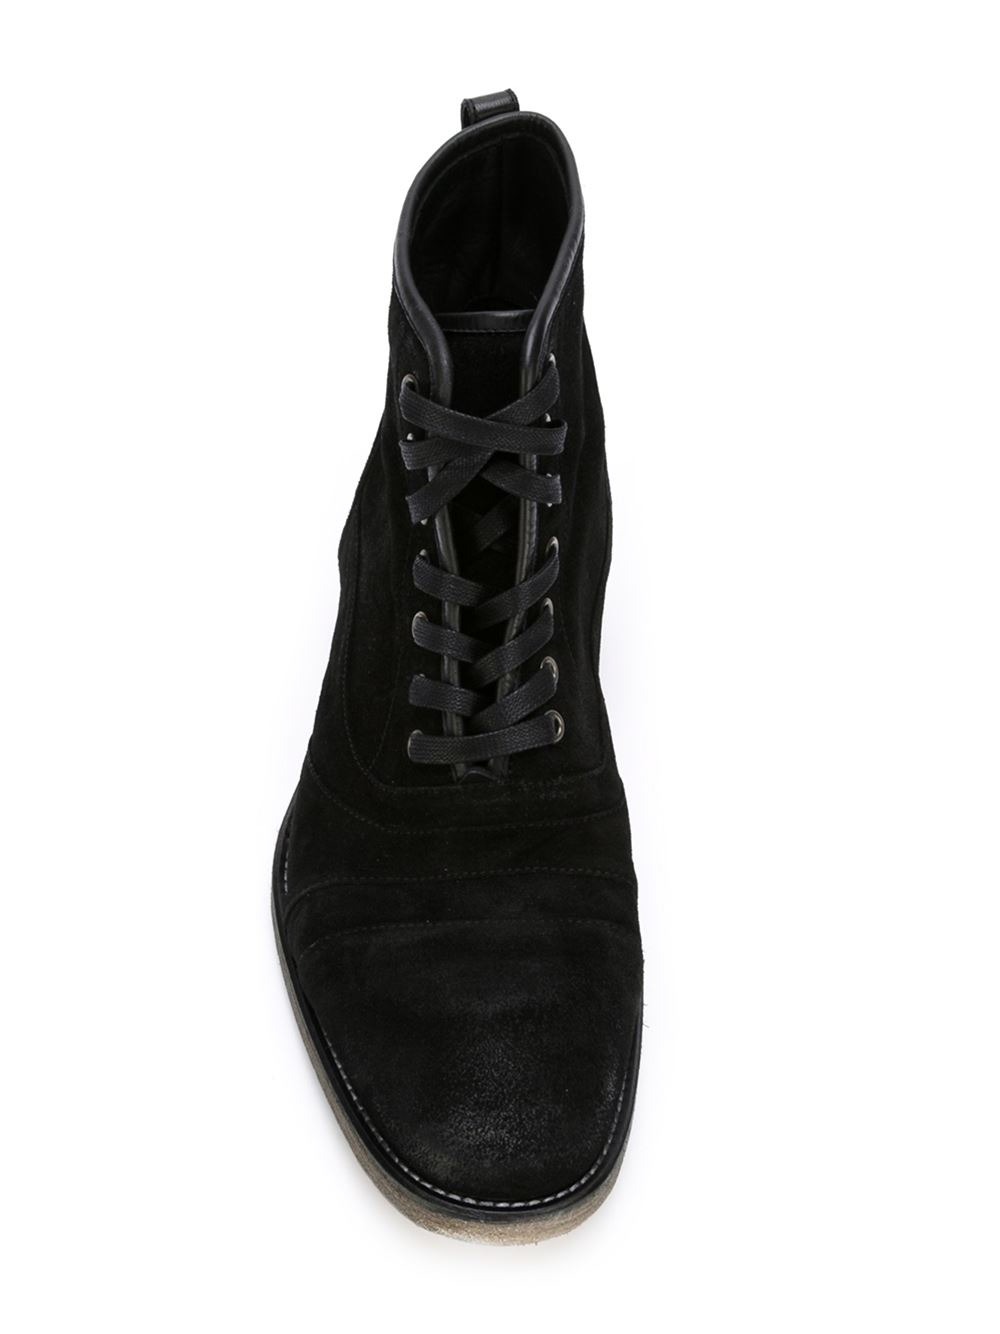 John Varvatos Utility Boots In Black For Men Lyst